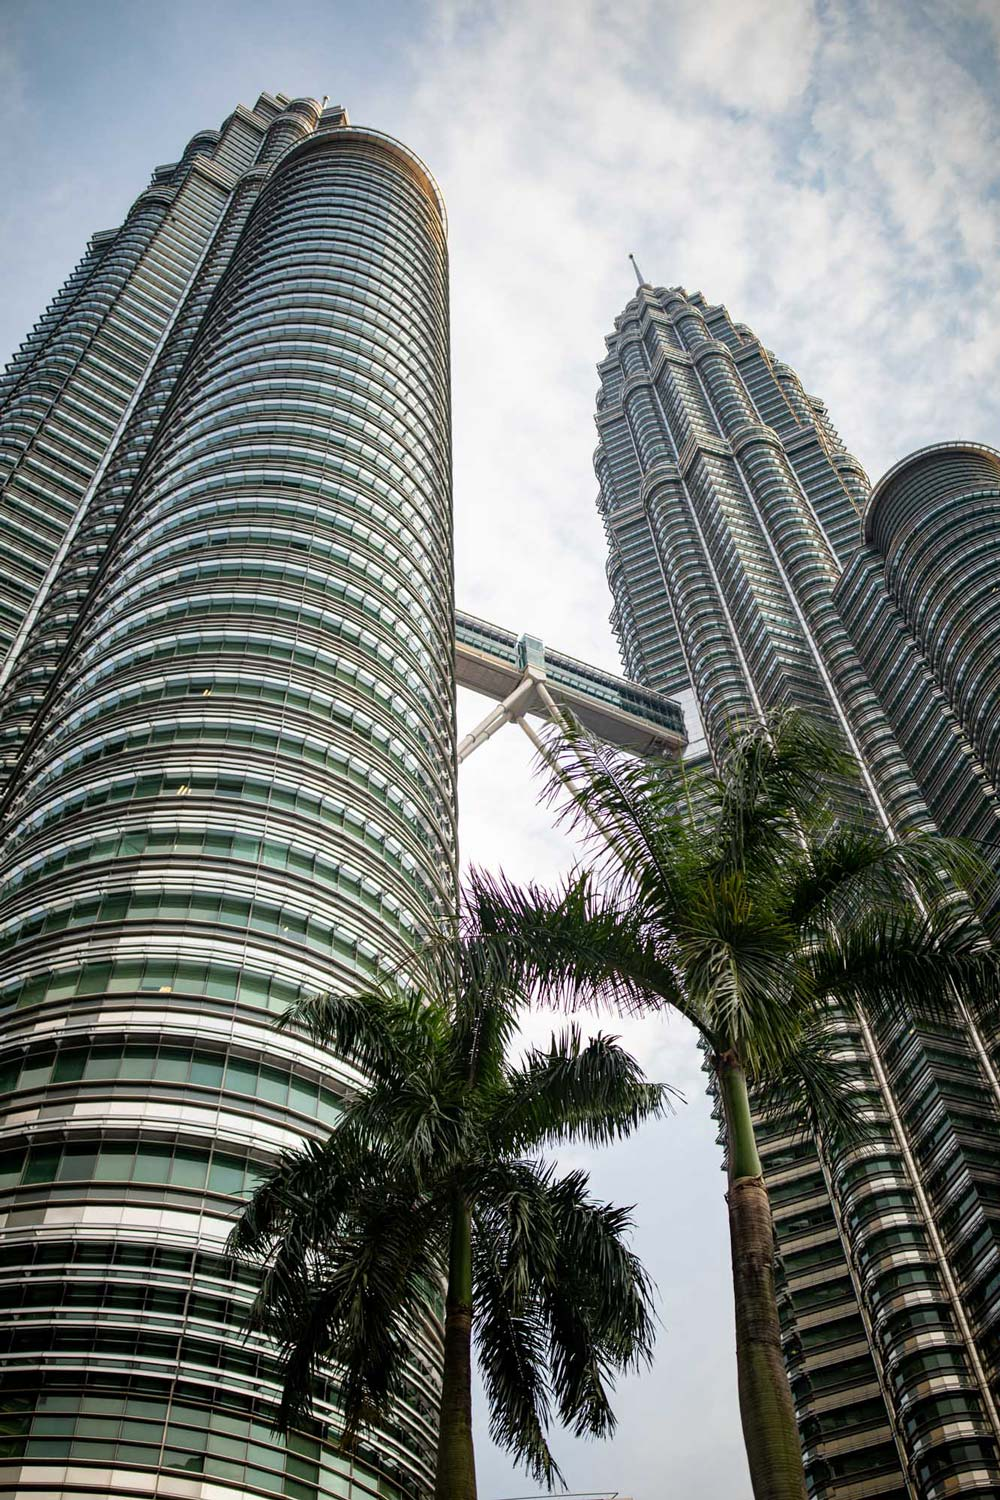 Petronas towers from bottom in Kuala Lumpur, Malaysia | Travel Photography